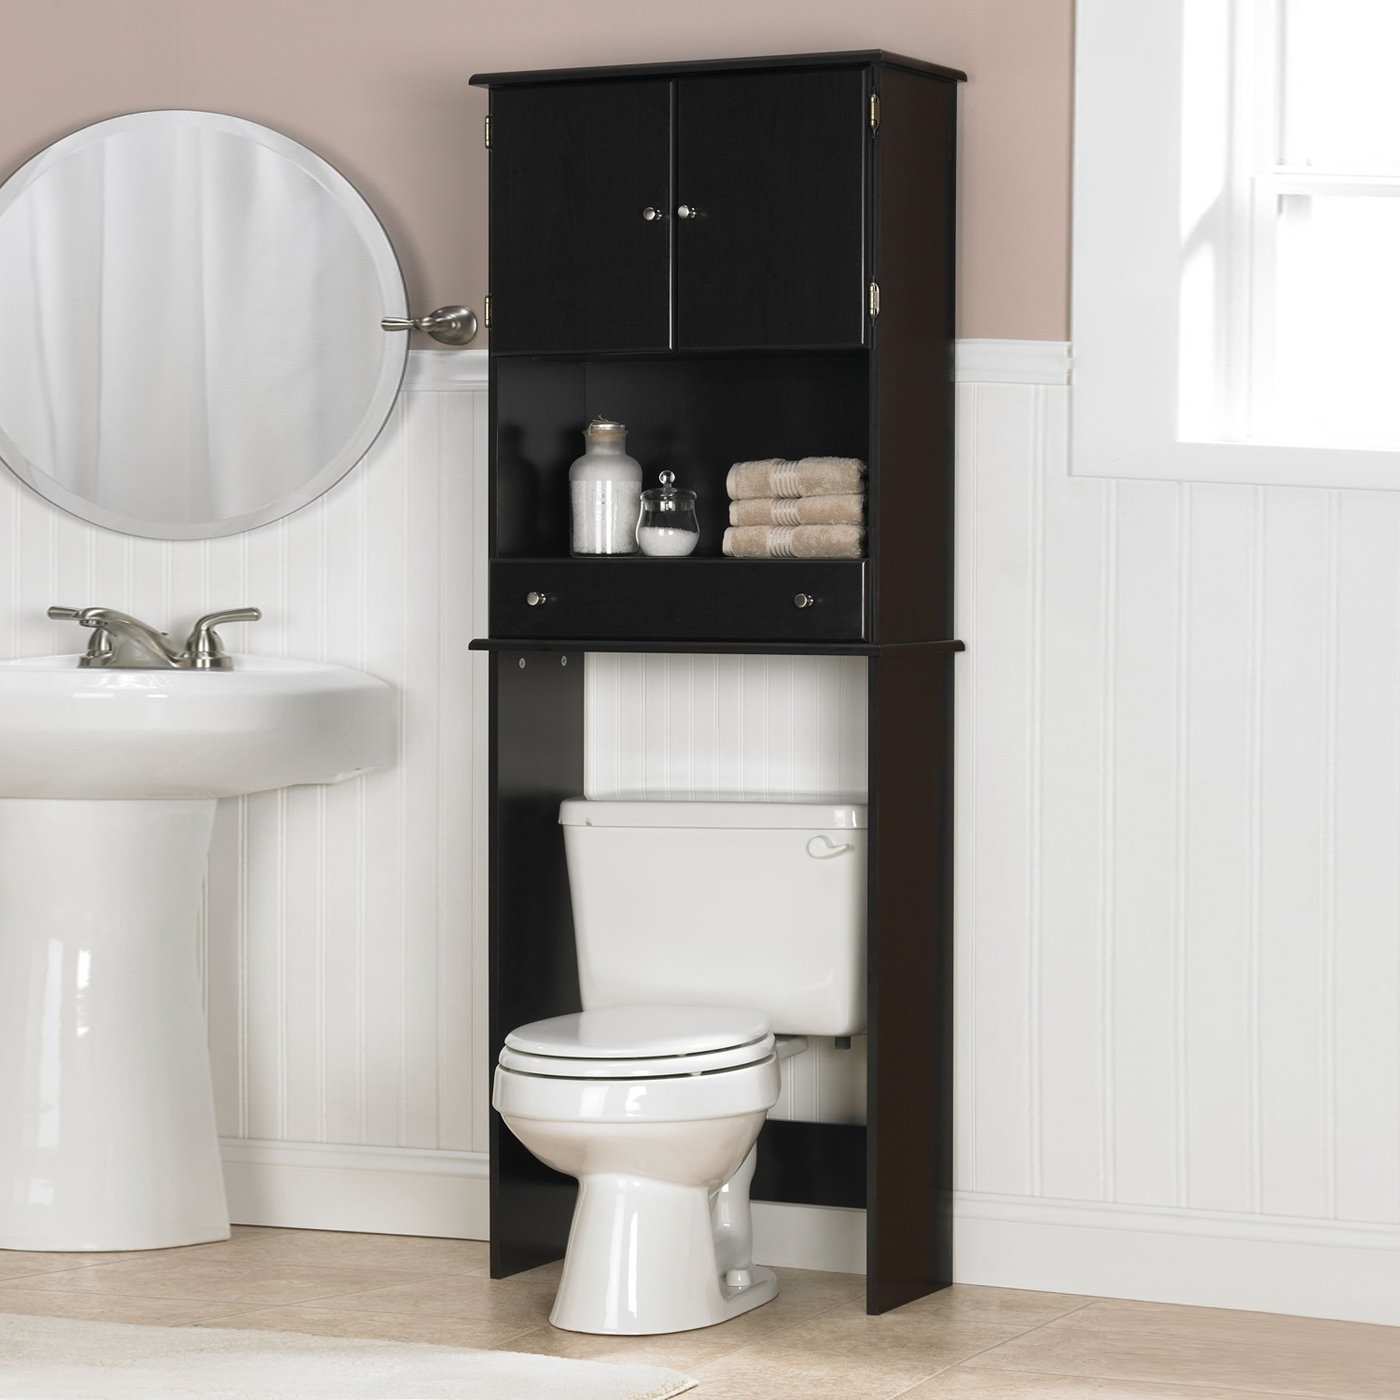 Bathroom Storage Over Toilet Blackblack above the toilet cabinet creative cabinets decoration